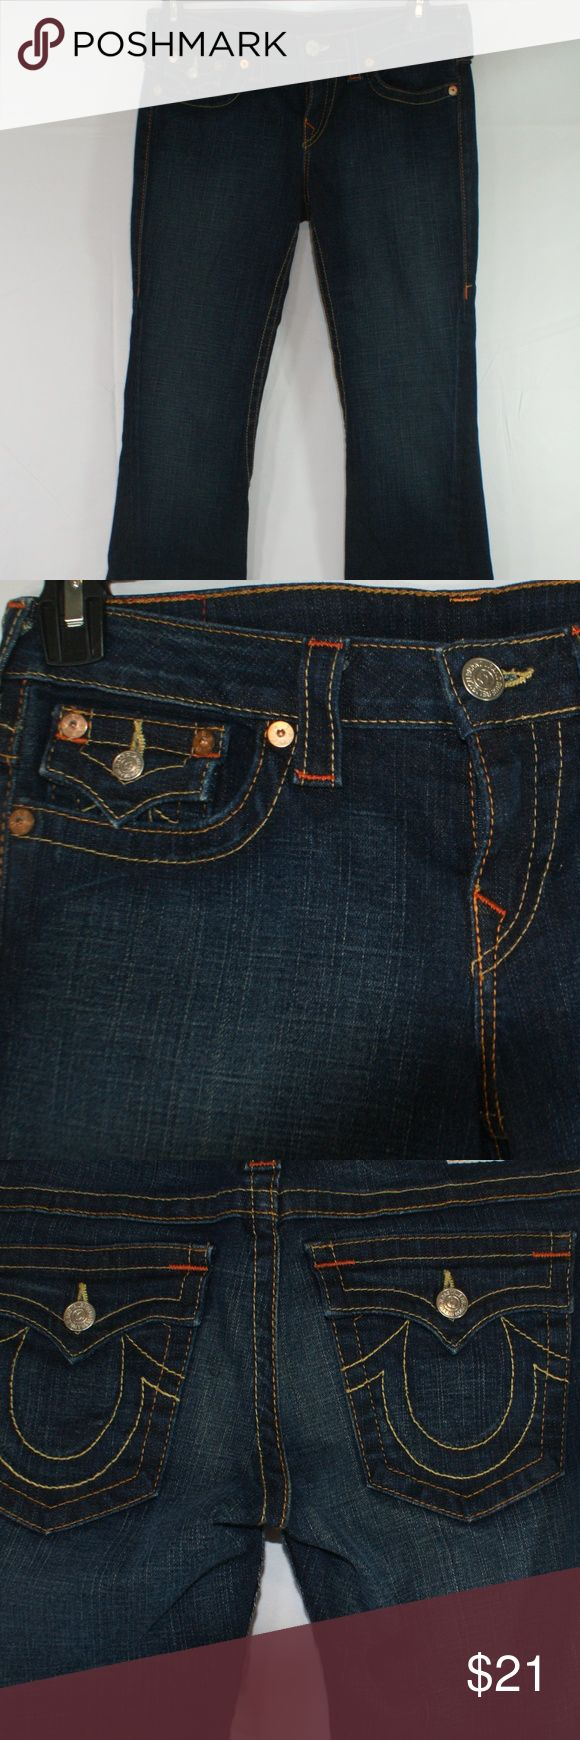 TRUE RELIGION WOMEN'S JEANS SIZE 30 TRUE RELIGION JEAN'S WORLD TOUR JOEY  SIZE 30  LIKE NEW, SLIGHT FLARE, TWISTED SEAM  NO RIPS OR TEARS  COIN POCKET AND BACK POCKETS WITH BUTTON CLOSURE   WAIST MEASURES 34 INCHES RISE IS 71/2 INCHES INSEAM IS 34 INCHES  Please measure a pair of your own to be sure of fit,  we do not accept returns TRUE  RELIGION Jeans Flare & Wide Leg